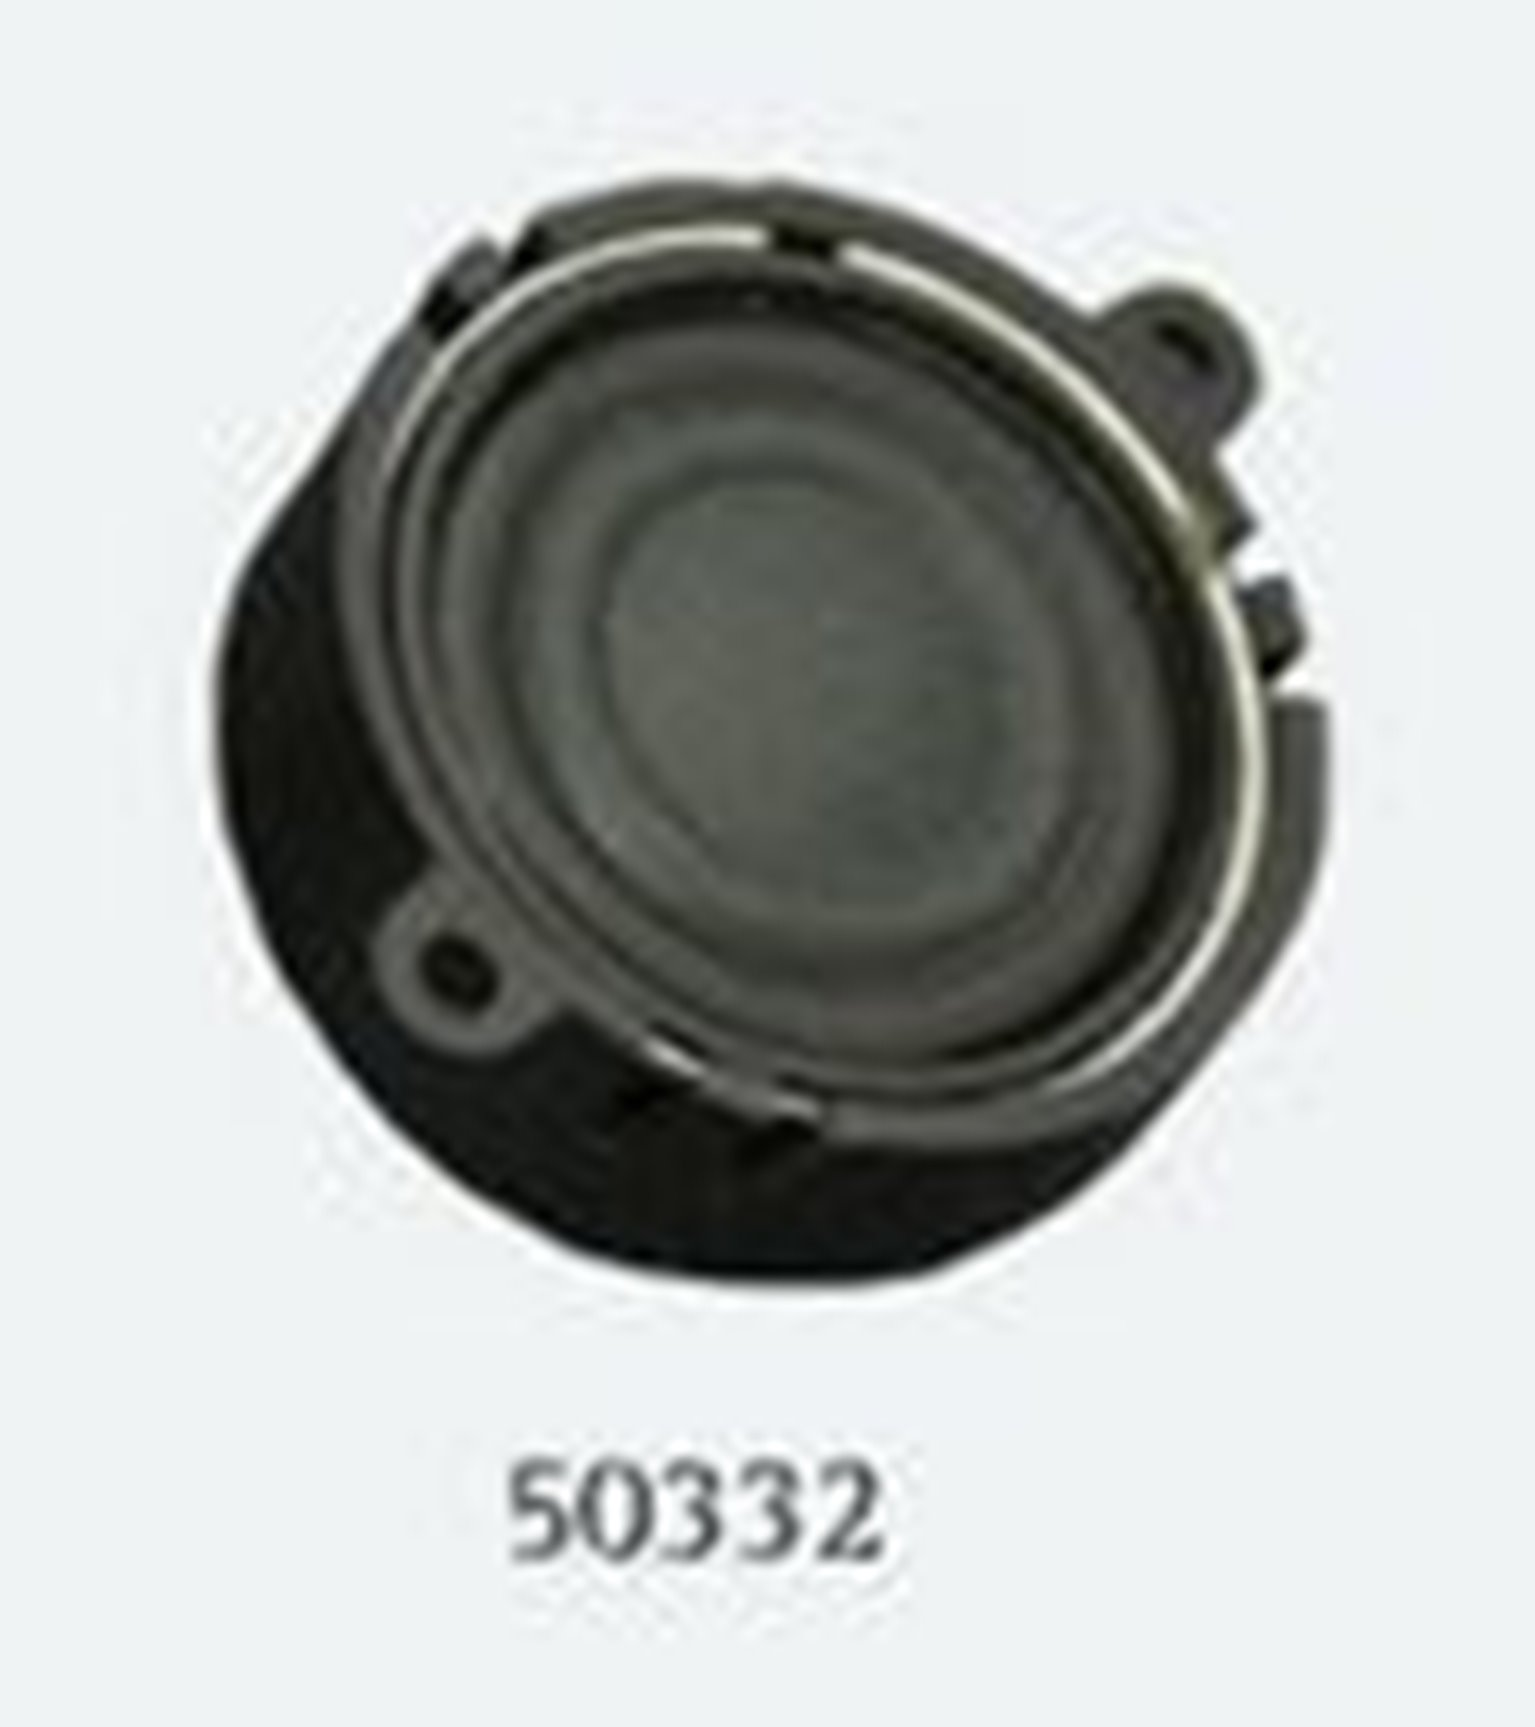 Loudspeaker 23mm, round, 4 Ohms, 1~2W with sound chamber - Loksound 4.0/Micro 4.0